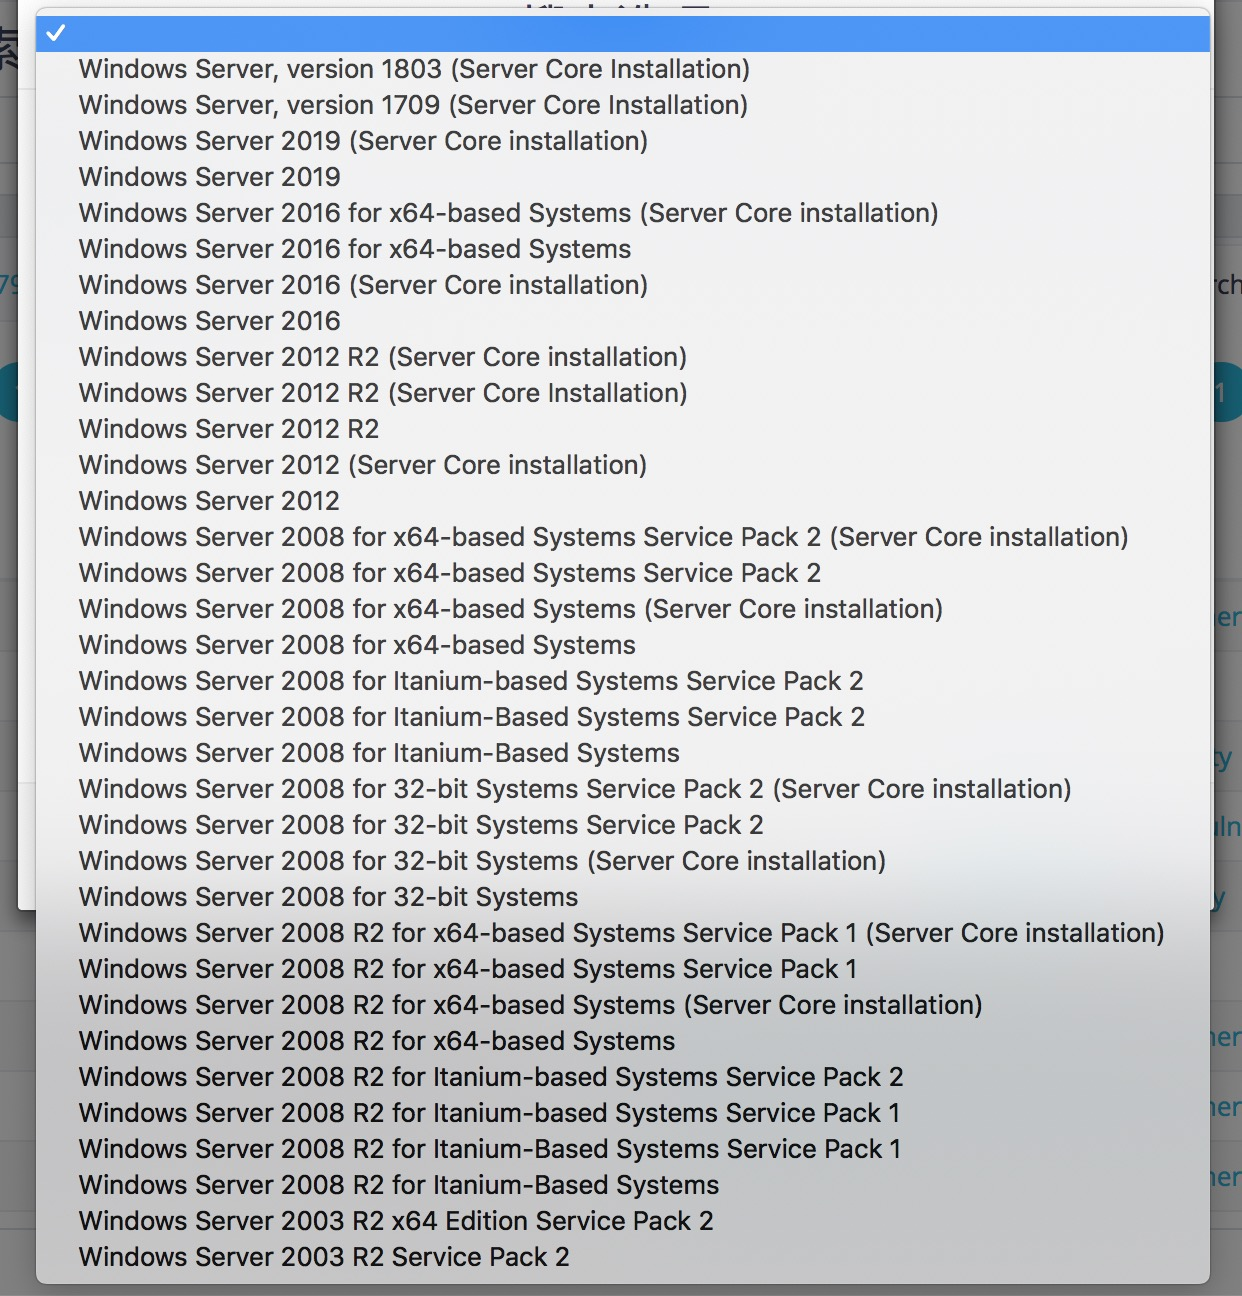 Server 2016 is not supported · Issue #34 · AonCyberLabs